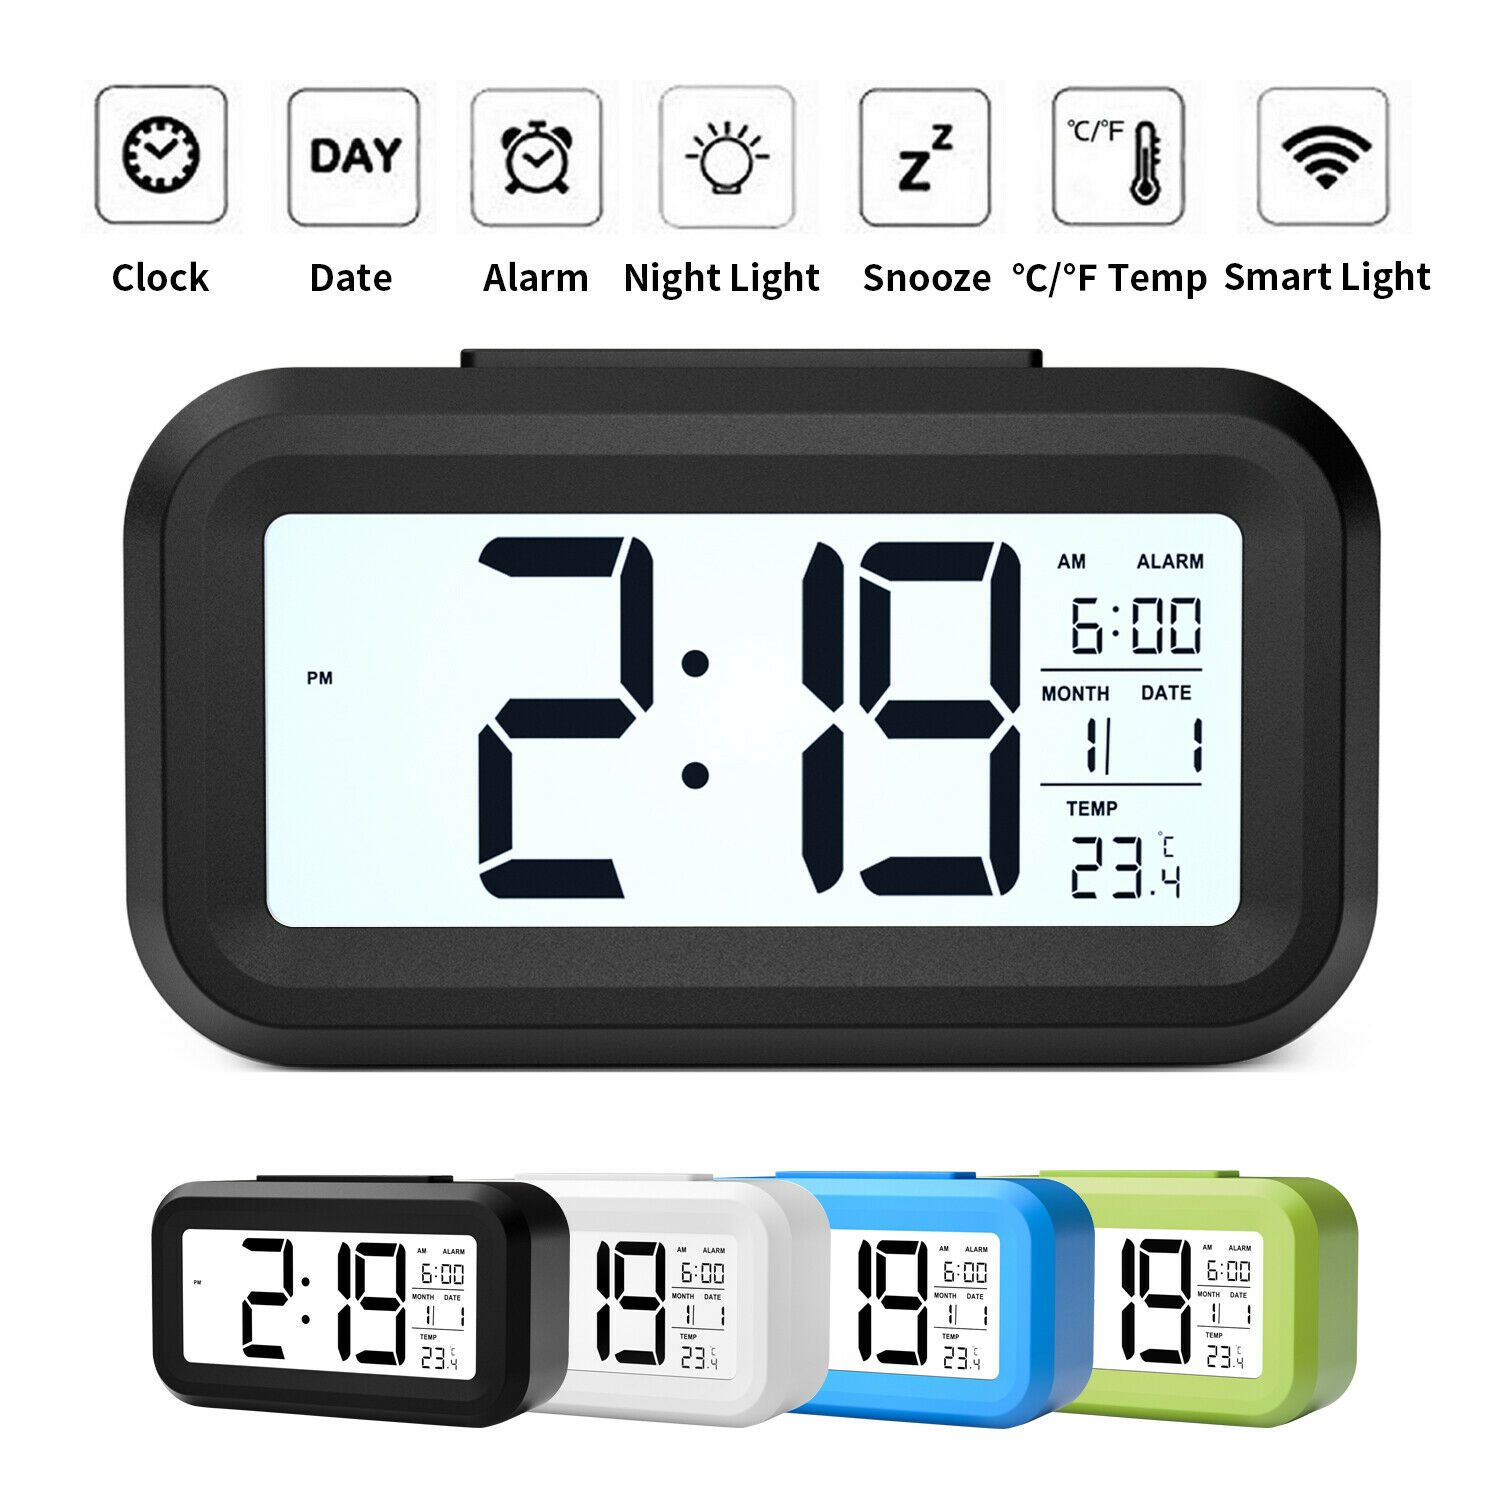 Digital Snooze Led Alarm Clock Backlight Time Calendar Temperature Thermometer Clock Ideas Of Clock Clock Digital Snooze Led Al Alarm Clock Clock Alarm